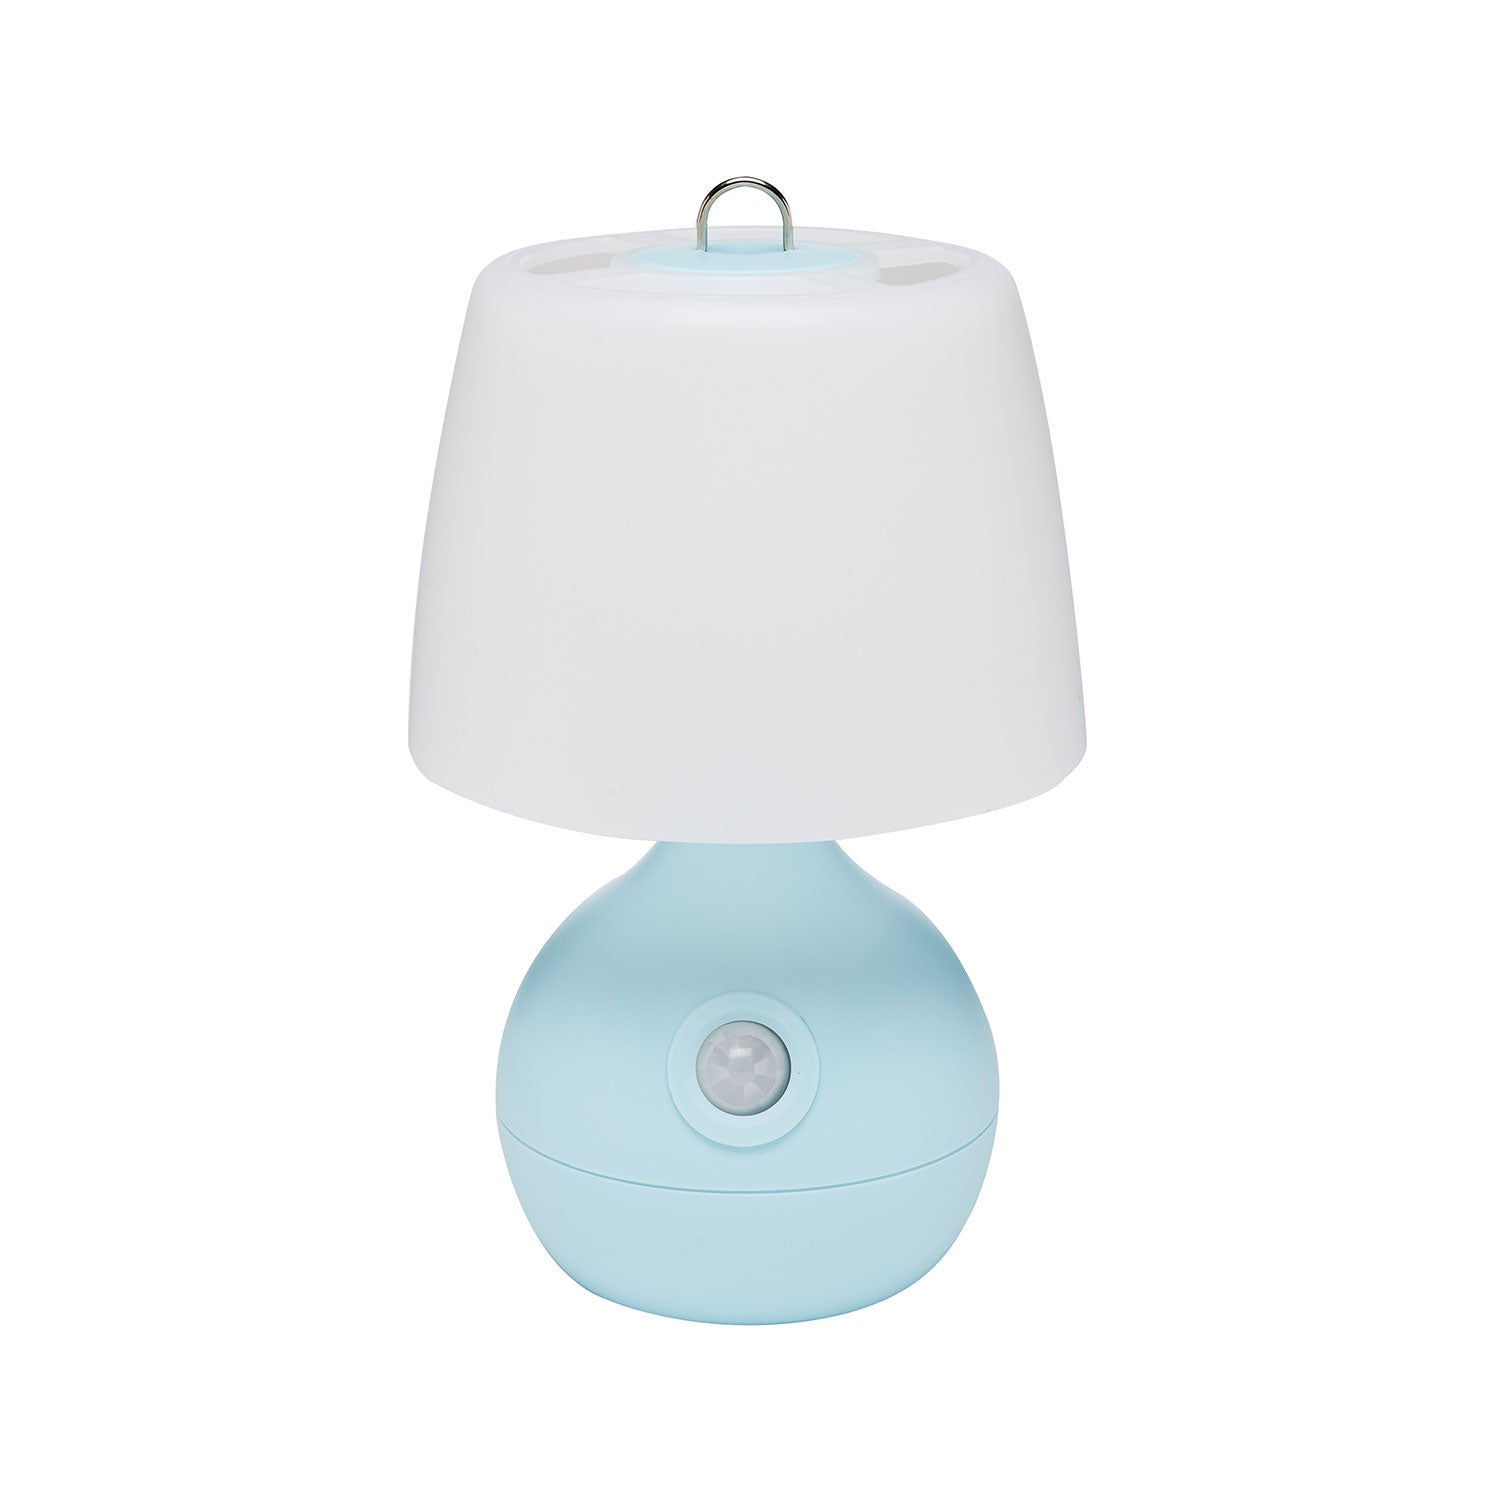 Baby Bright Motion-Activated Sensor Light